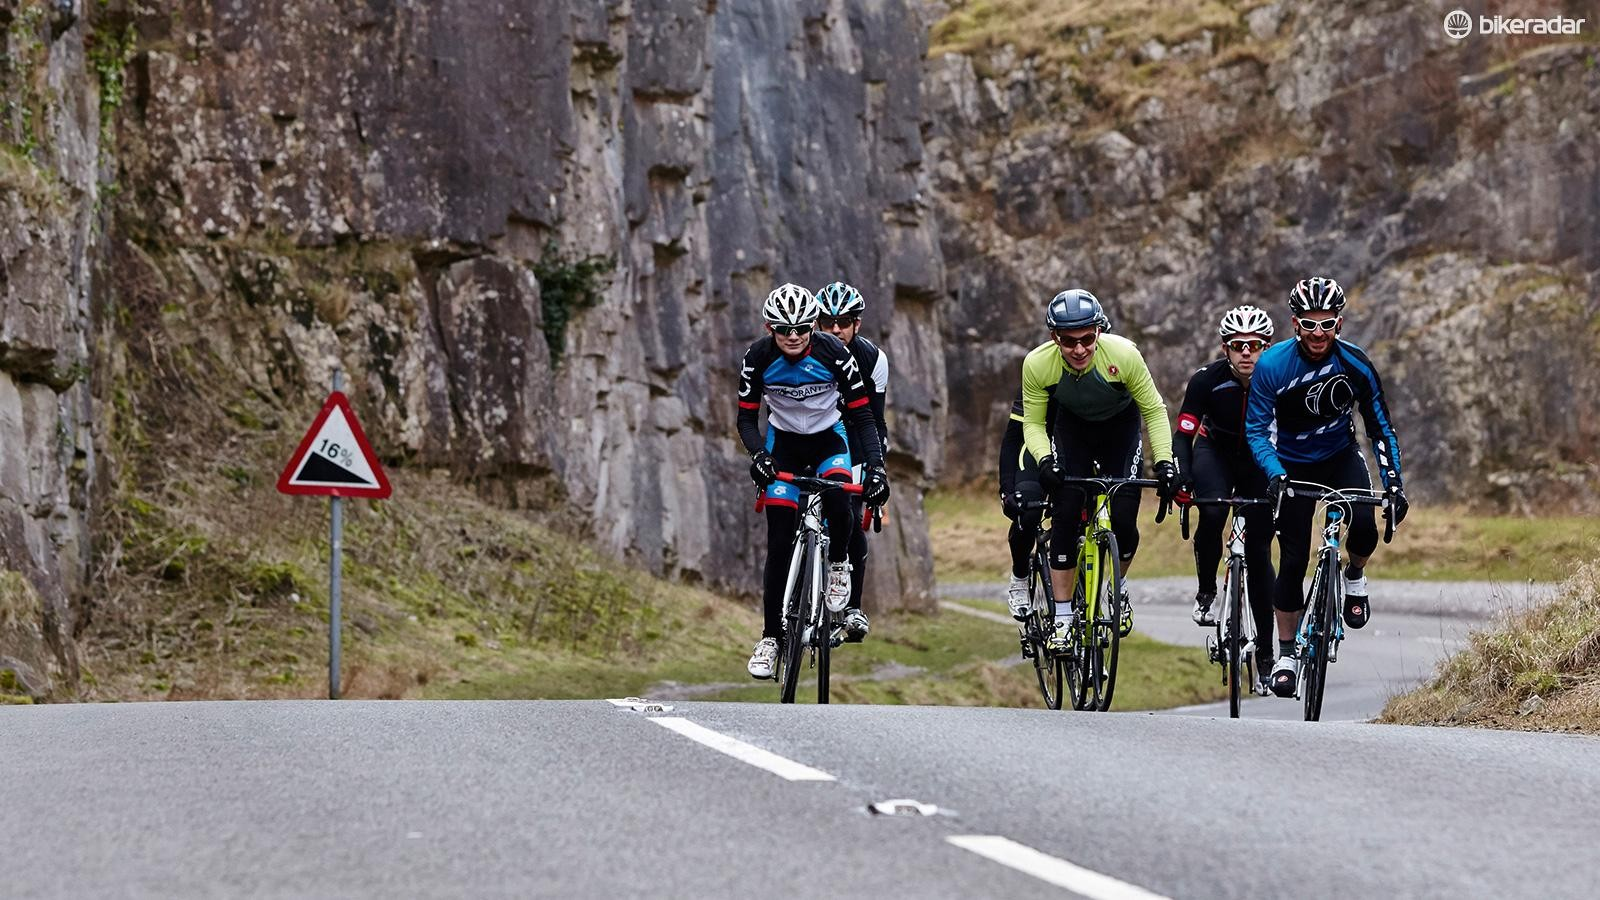 Be prepared. Make sure you have the right kit and nutrition sorted to suit your ride